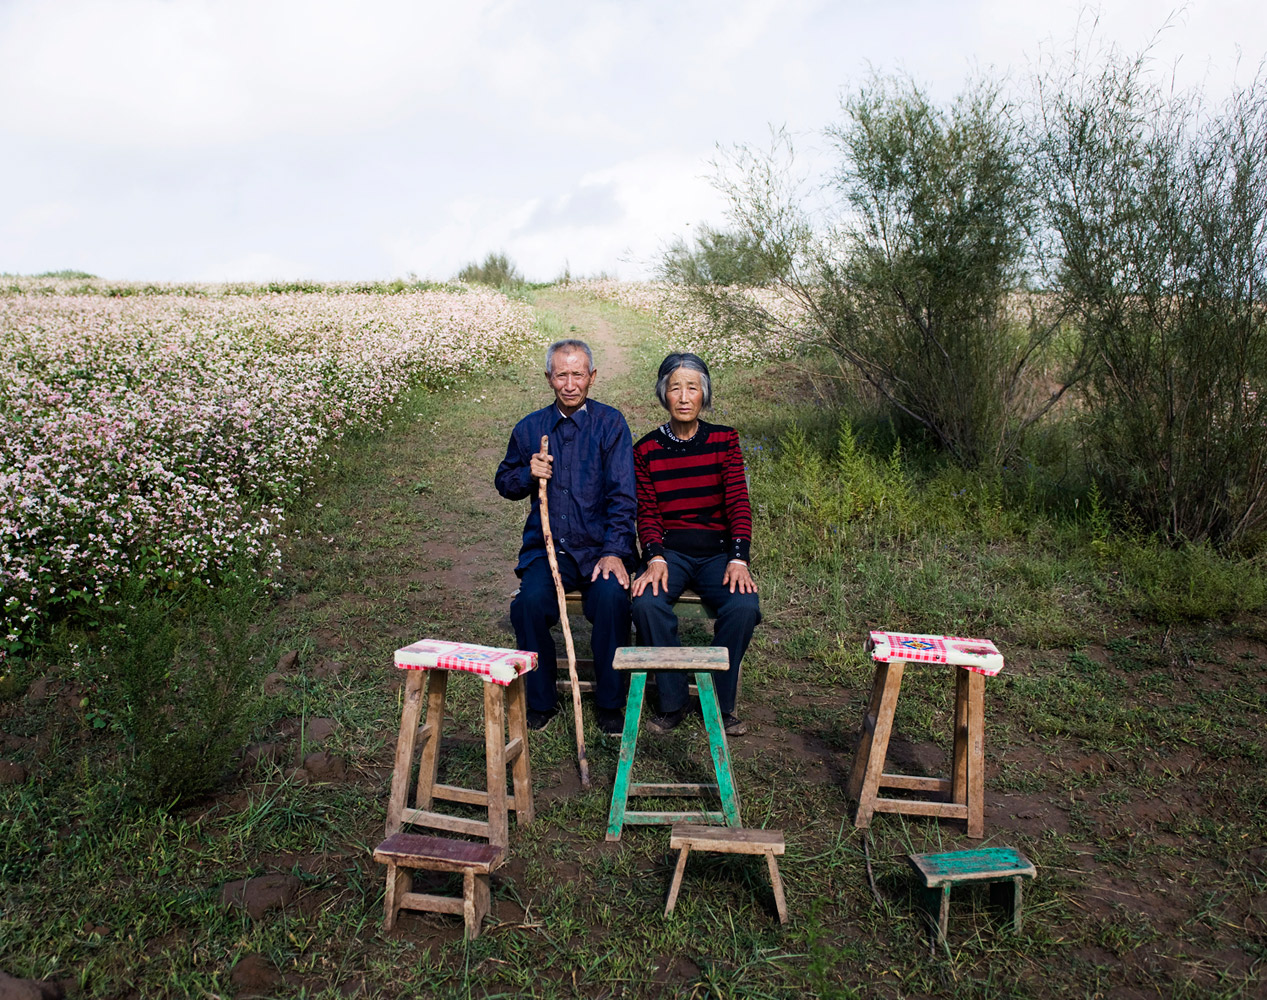 Scholarship winner Liu JieTian Yunxiu (left) and his wife Liu Dezhen sit beside six empty seats in an undeveloped village in Shan'xi province of western China, August 24, 2011. There are six young people from Tian Yunxiu's family who left their village to find jobs in cities.